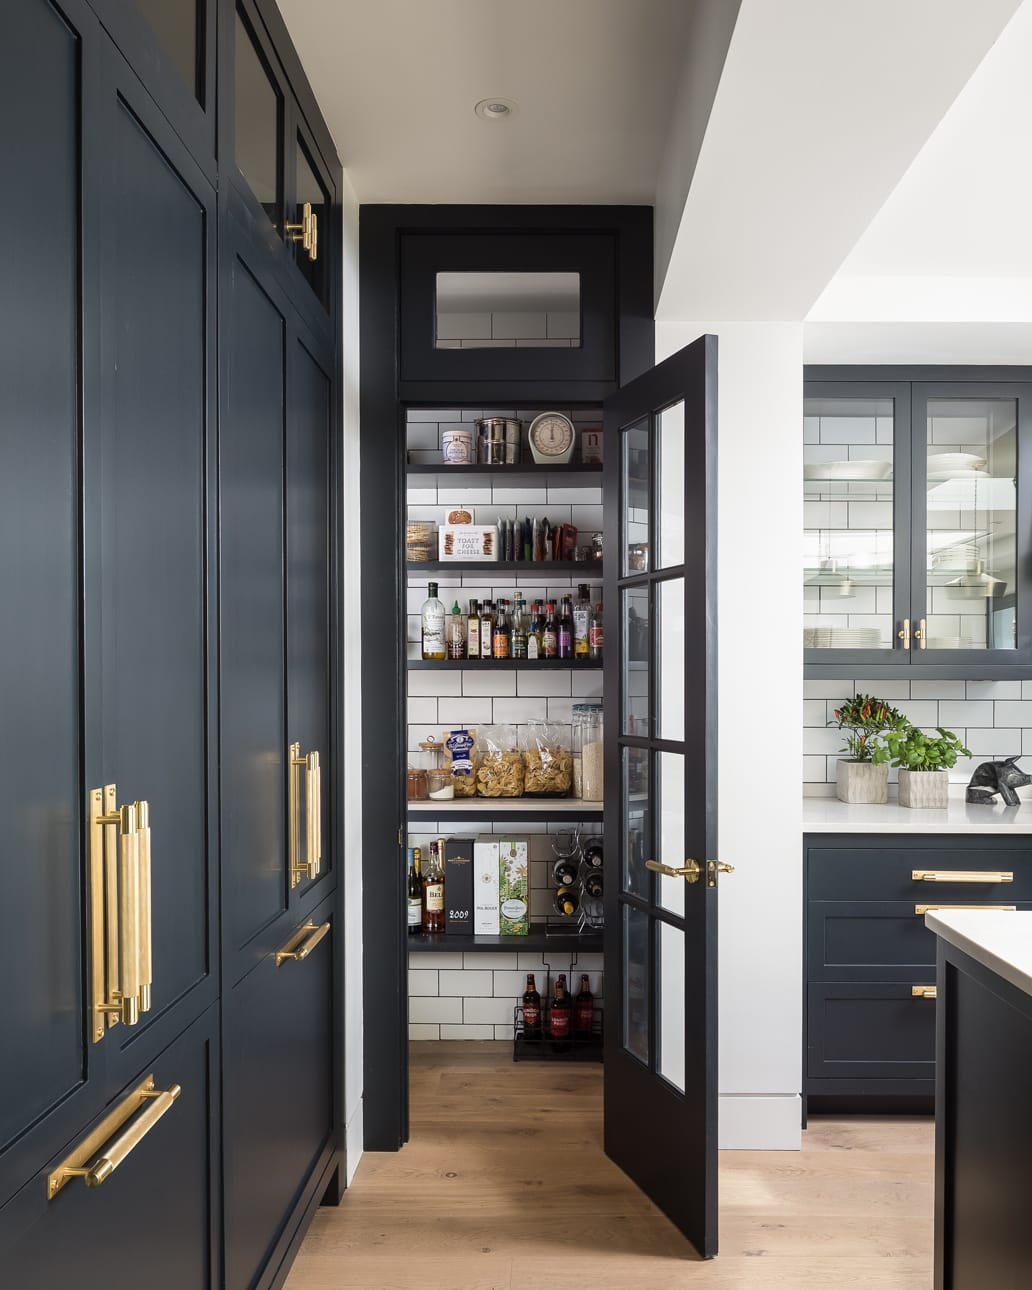 The Lowther concept pantry with white wall tiles